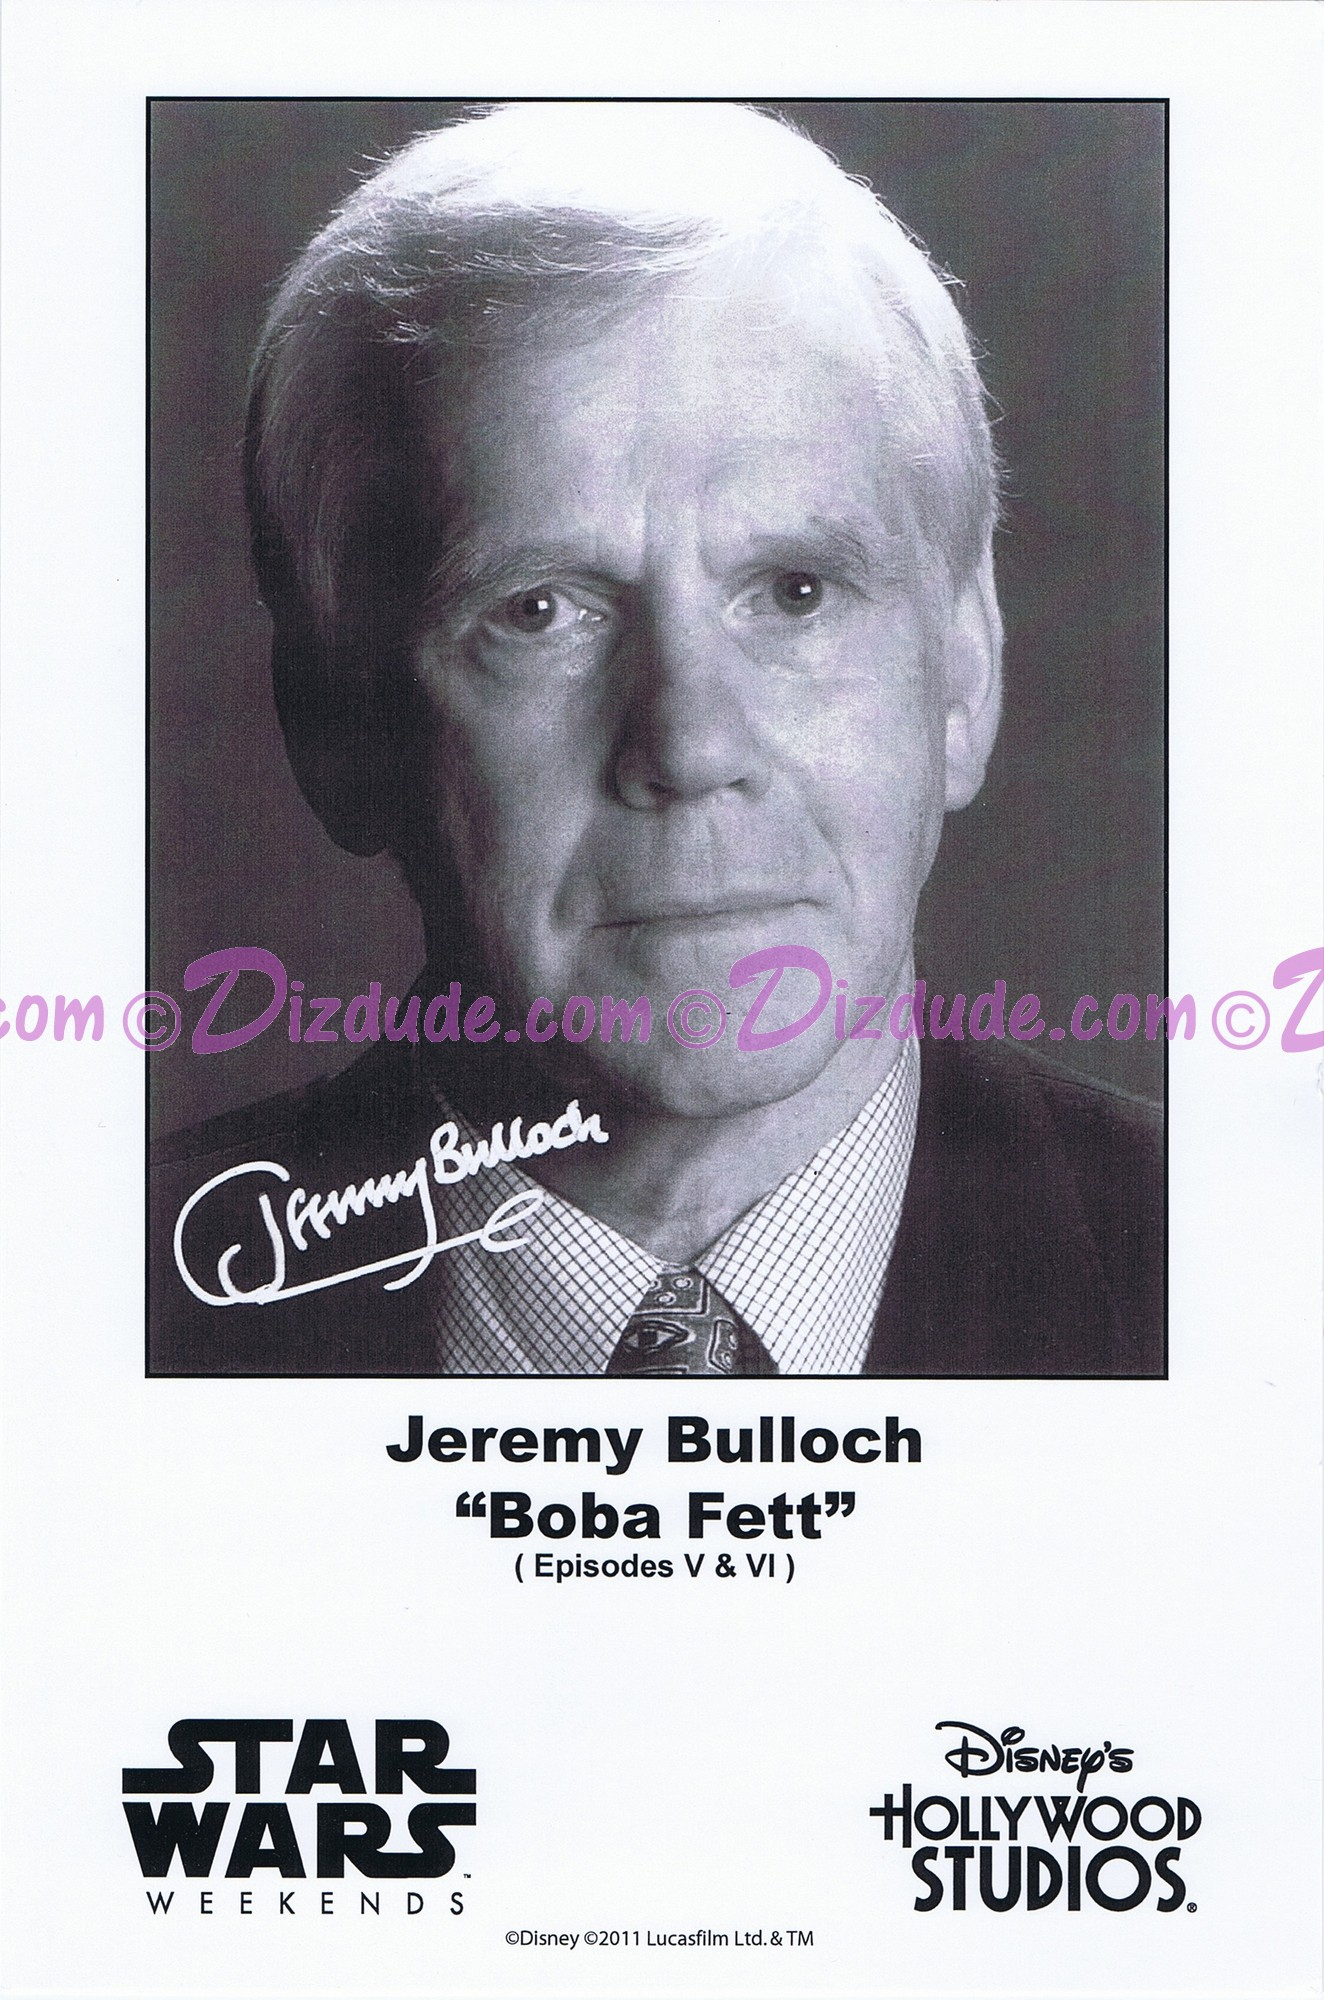 Jeremy Bulloch who played Boba Fett Presigned Official Star Wars Weekends 2011 Celebrity Collector Photo